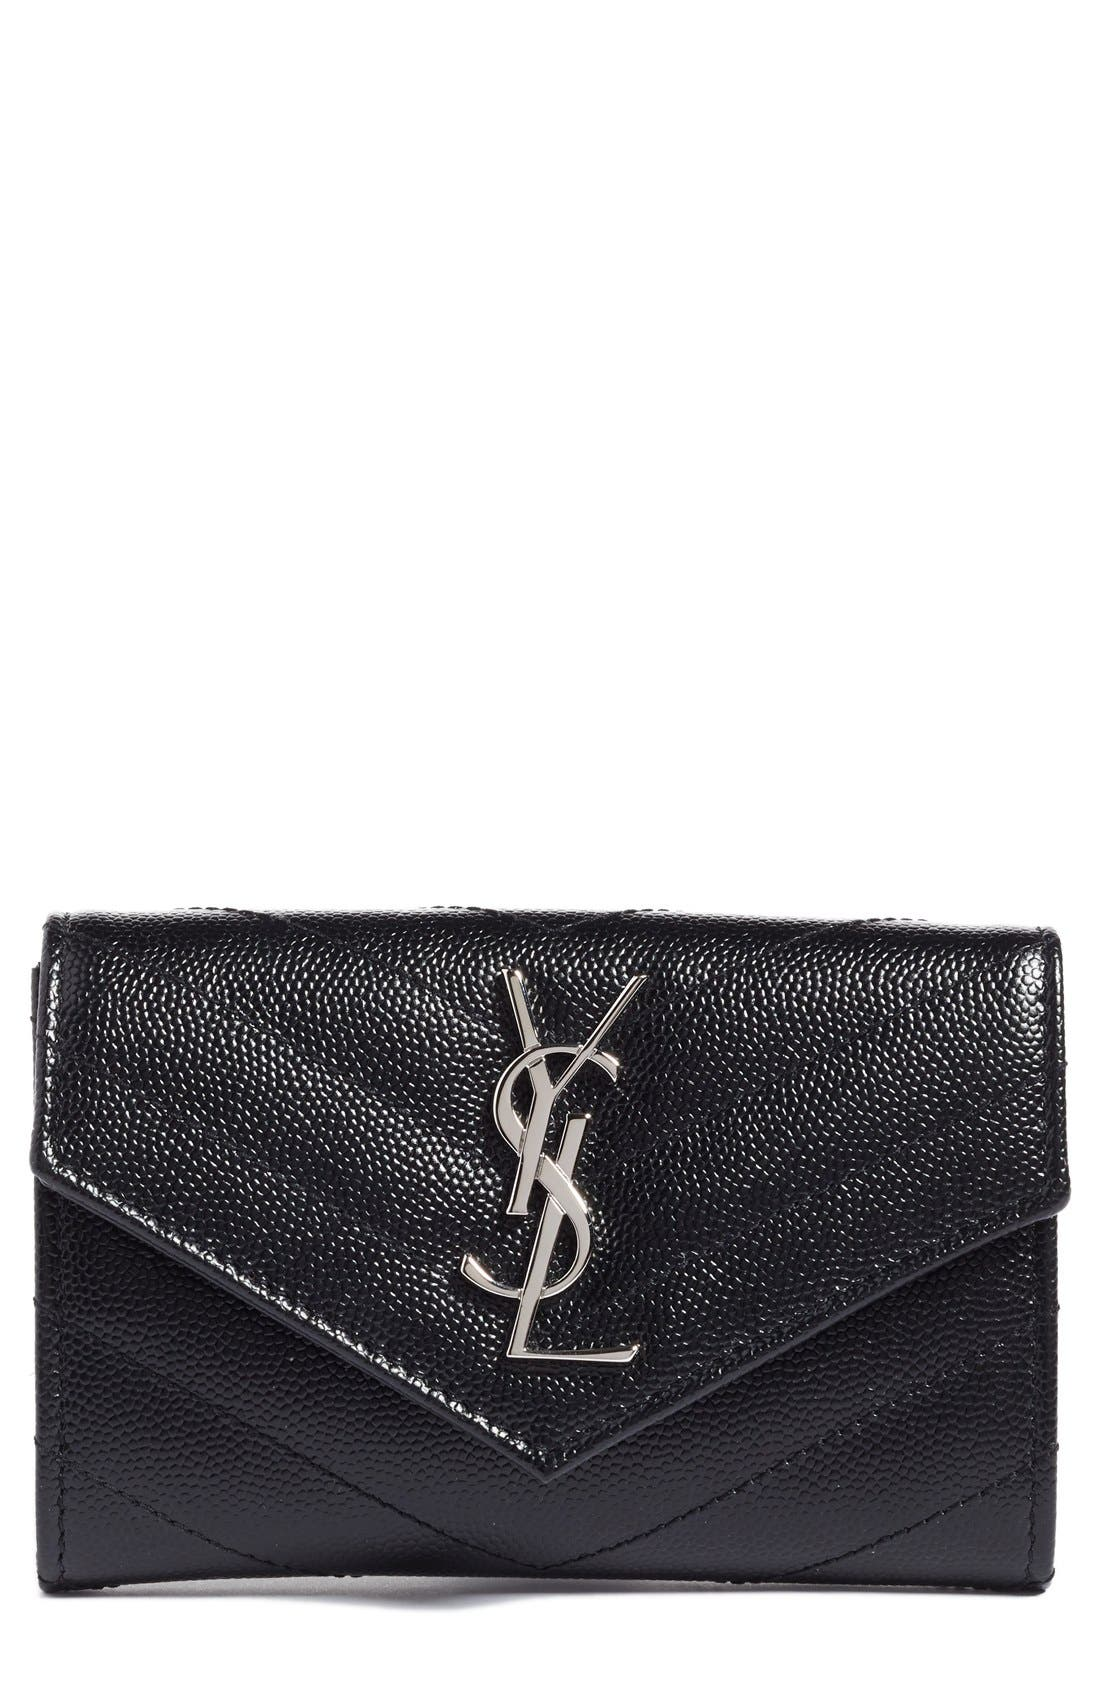 'Small Monogram' Leather French Wallet,                             Main thumbnail 6, color,